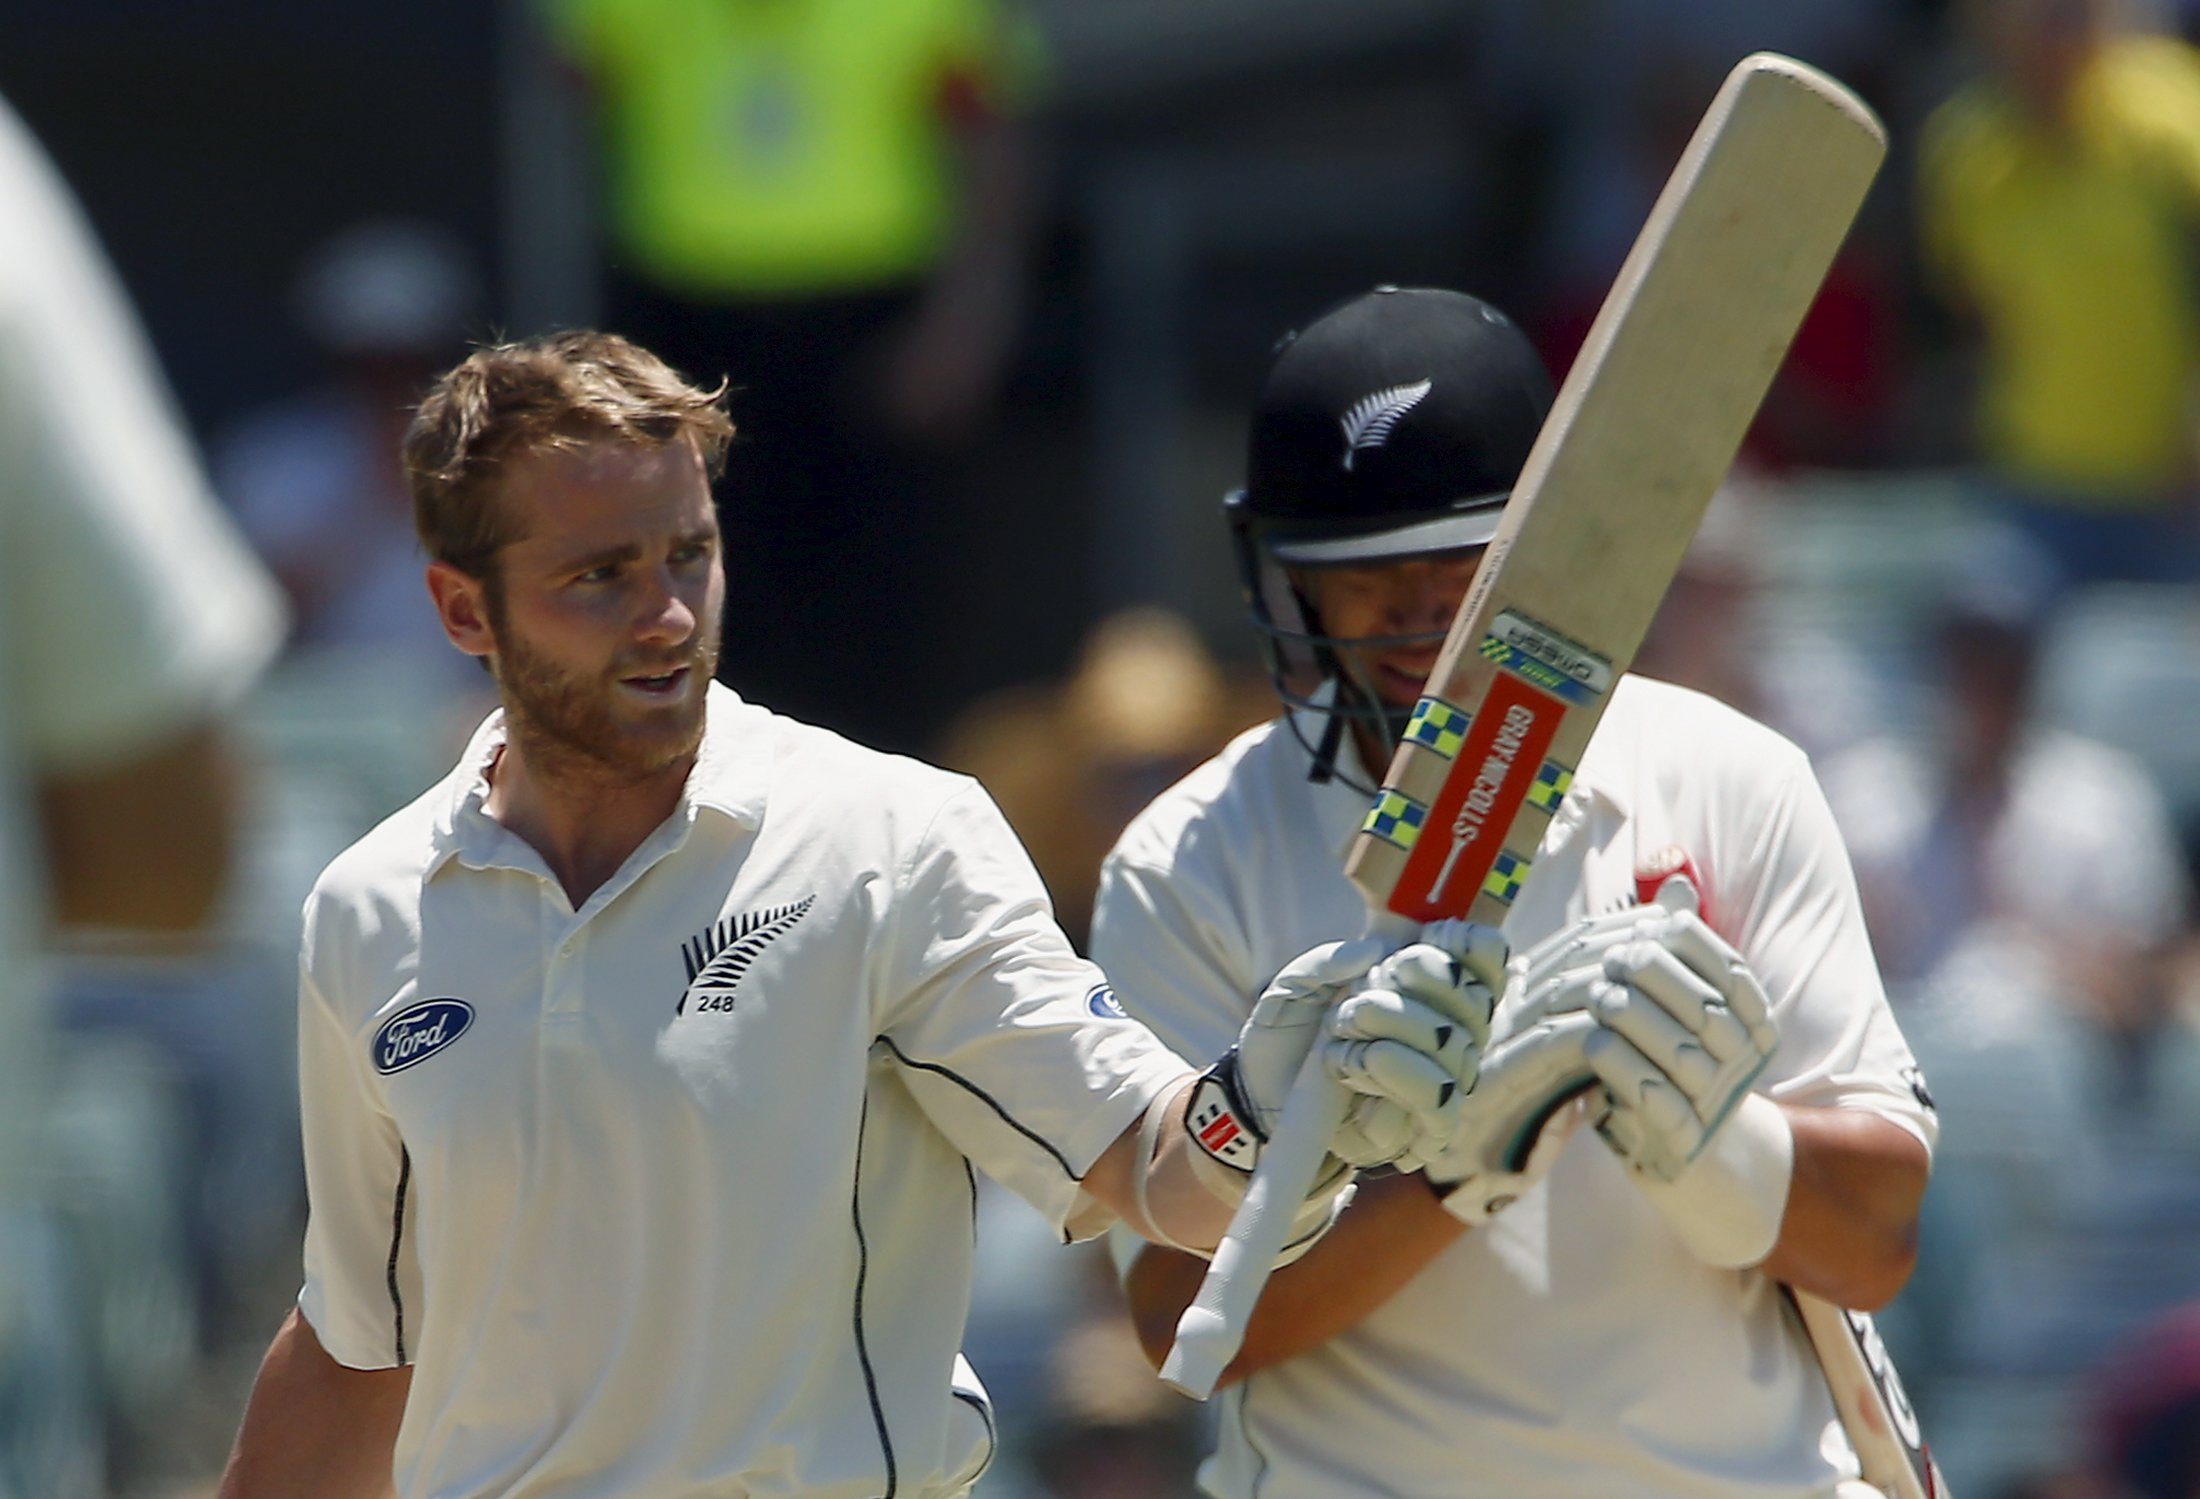 New Zealand's Kane Williamson (left) is applauded by team mate Ross Taylor as he celebrates reaching his century during the third day of the second cricket test match against Australia at the WACA ground in Perth, Western Australia, November 15, 2015. Photo: Reuters